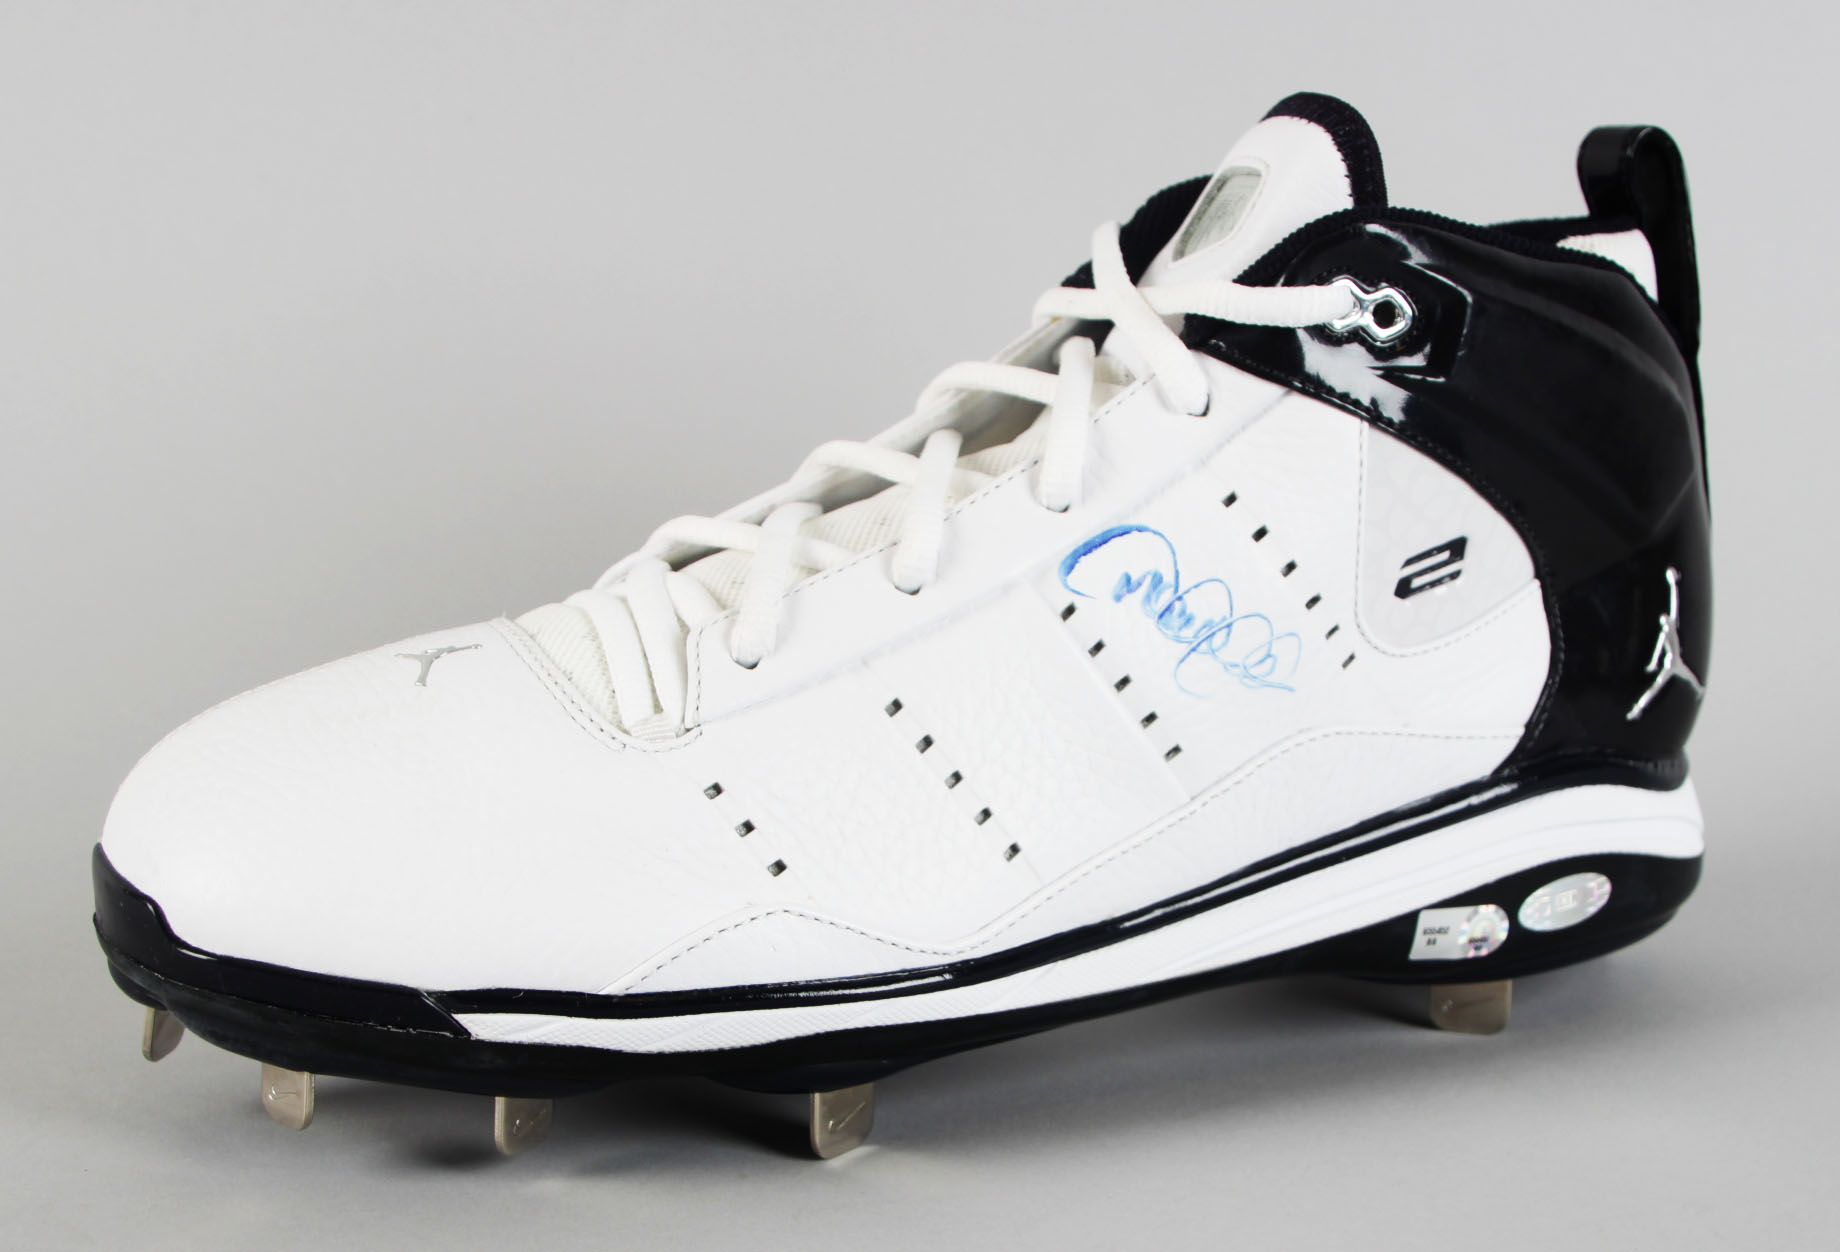 b8f738c39975 New York Yankees – Derek Jeter Signed Pro Model Cleat – COA Steiner ...